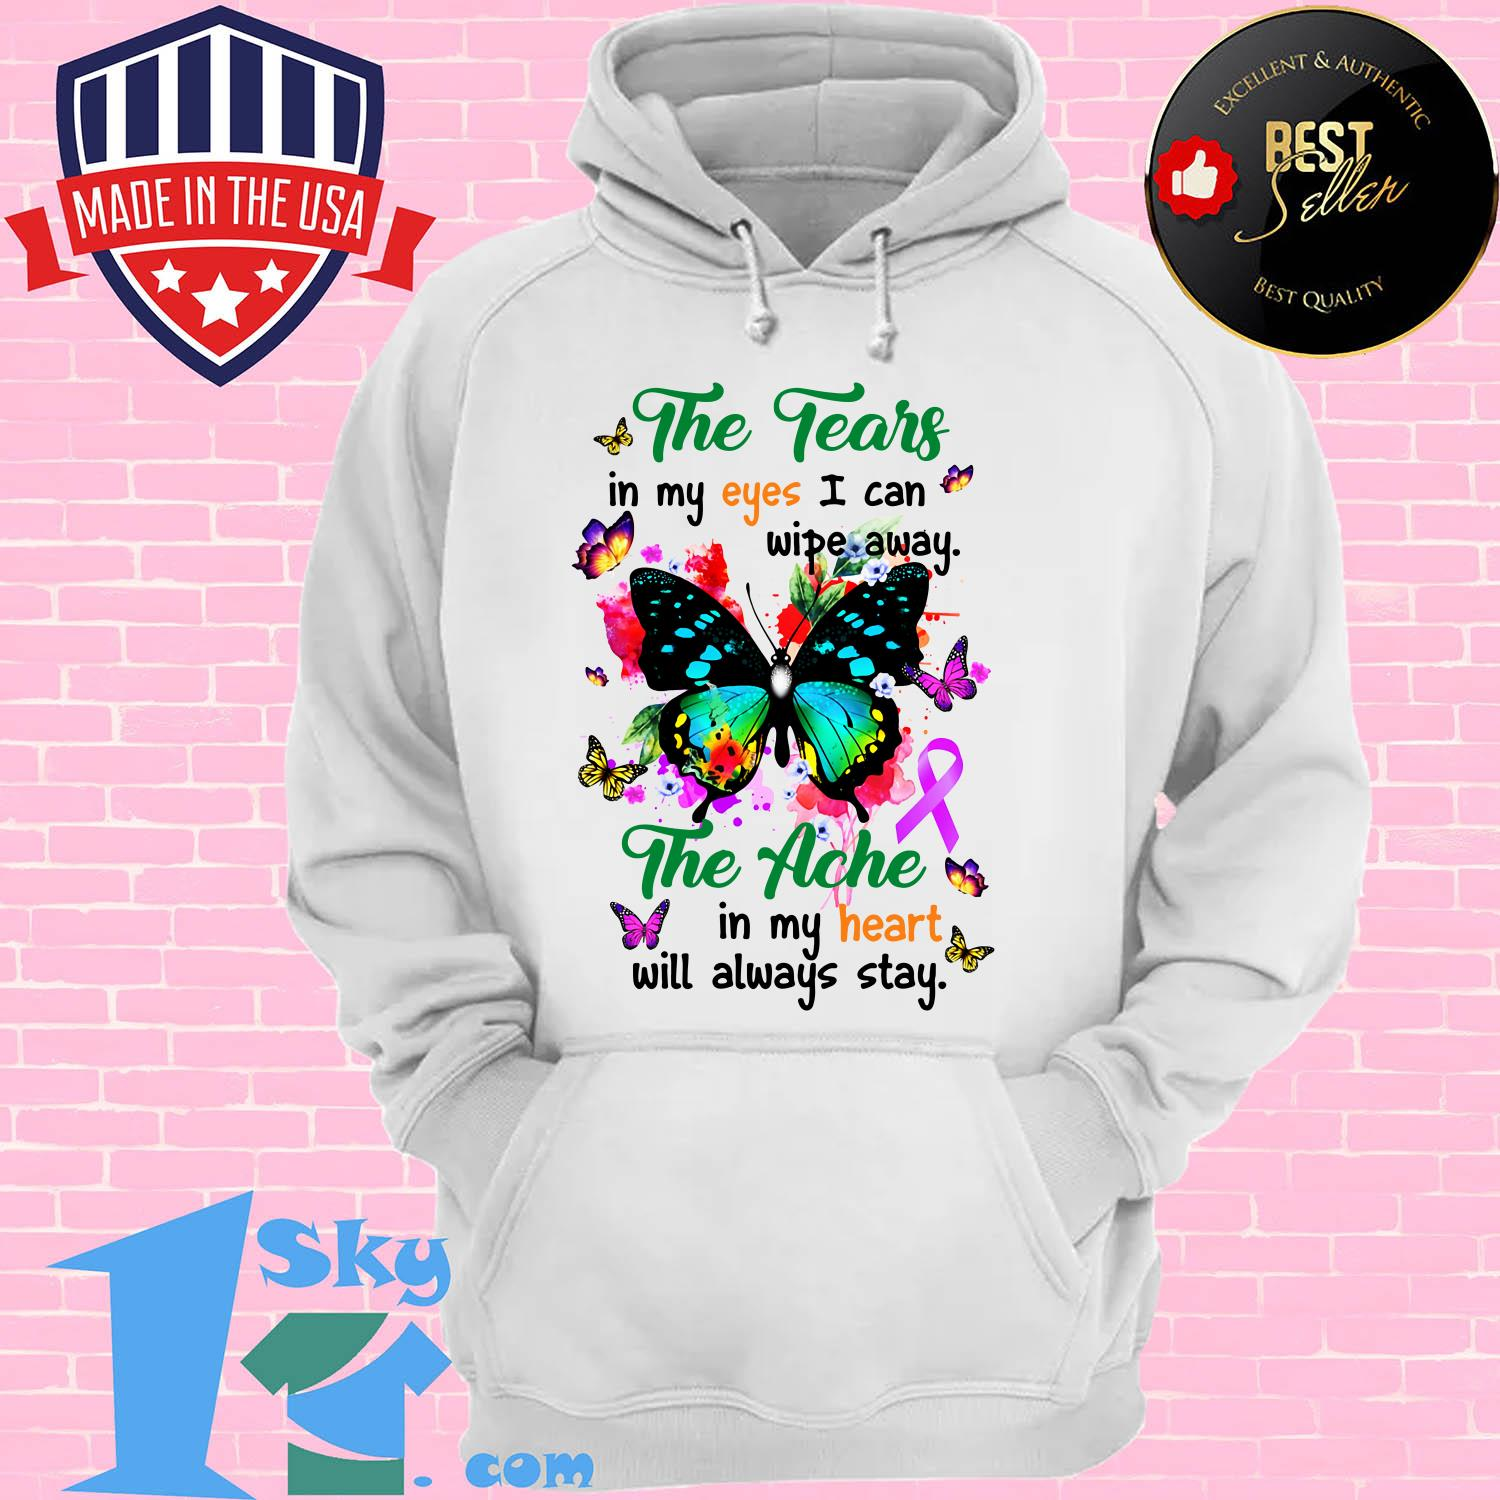 the tears in my eyes i can wipe away the ache in my heart will always butterfly stay hoodie - The tears in my eyes I can wipe away the ache in my heart will always butterfly stay shirt